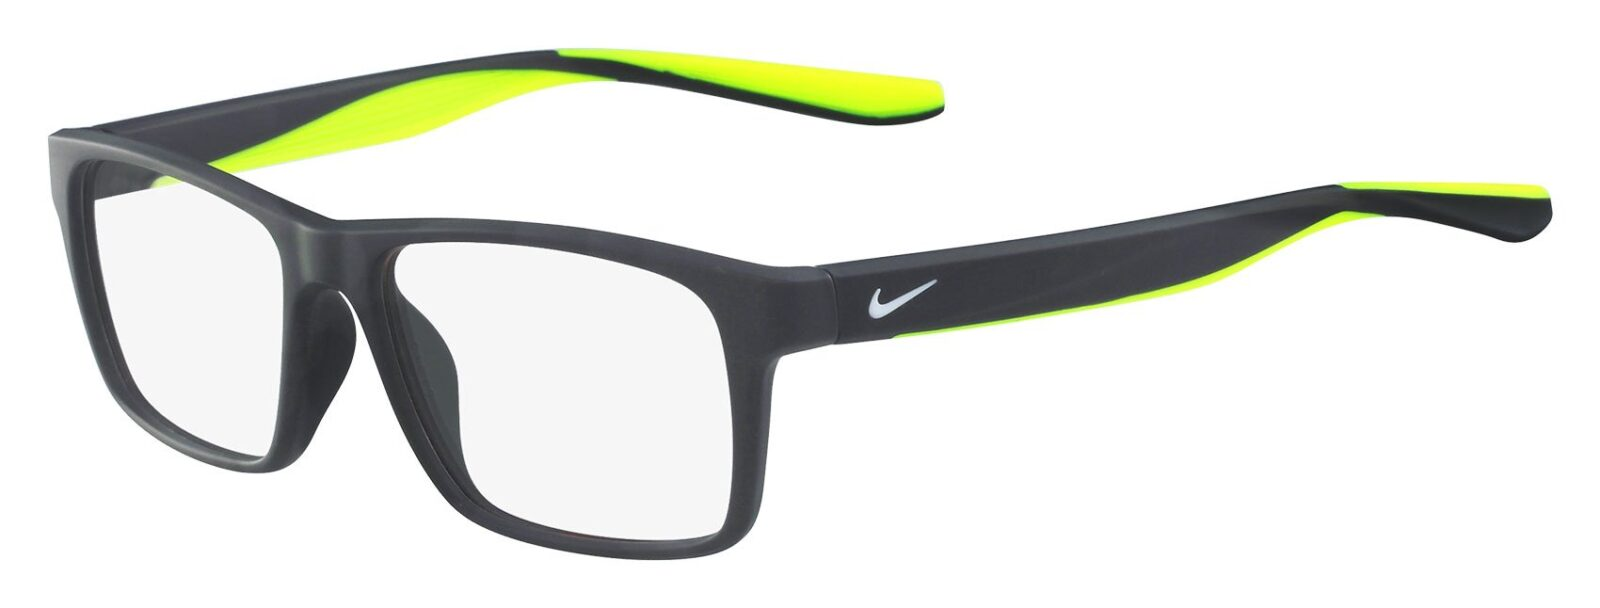 Nike 7101 Lead Glasses